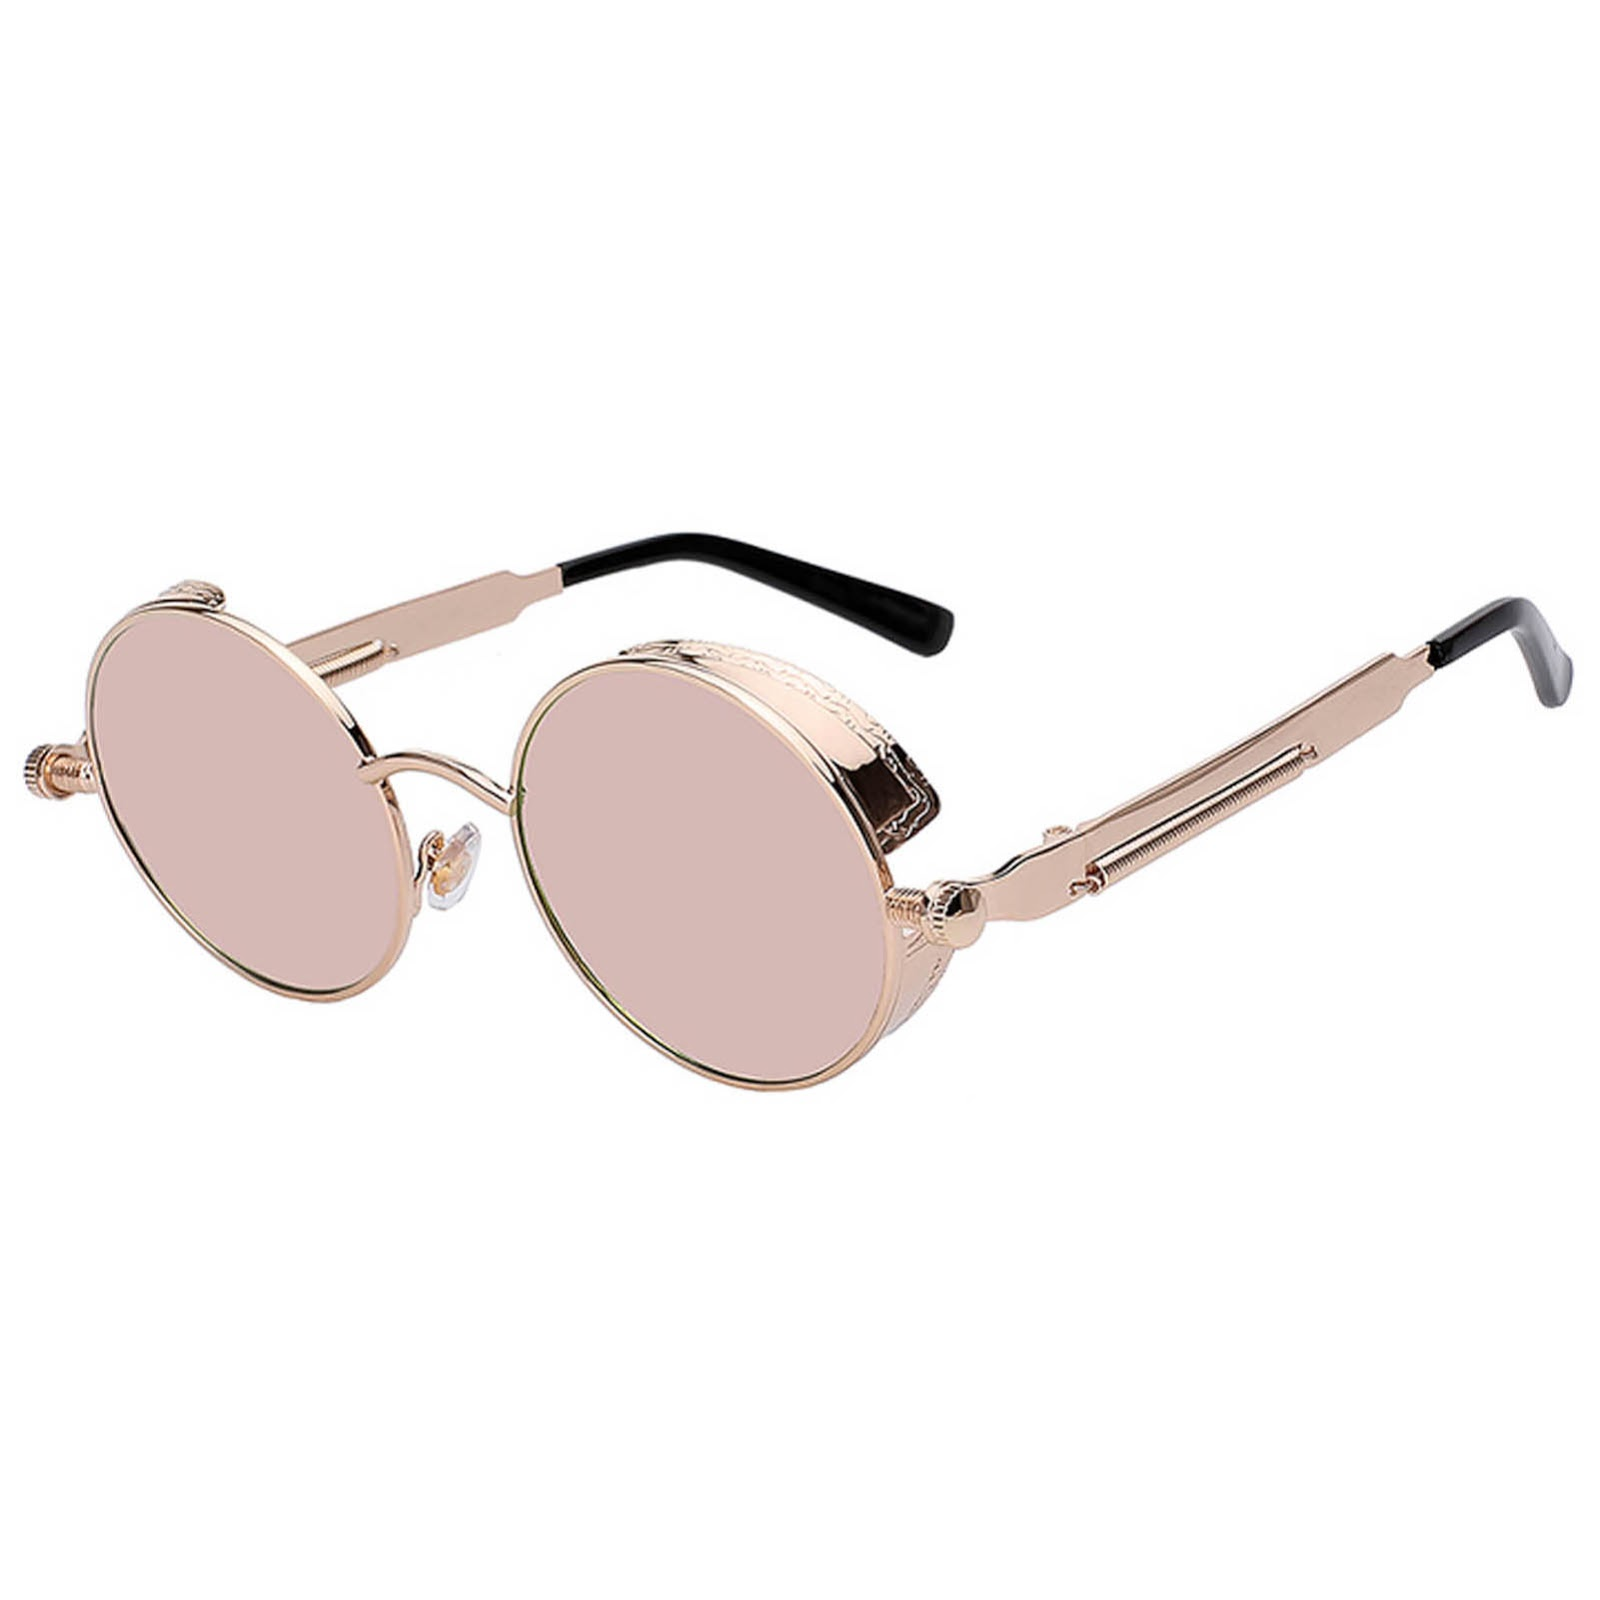 7684e6d173e http   www.online-welcome.com product owl-steampunk-gothic-eyewear- sunglasses-womens-mens-metal-round-circle-gold-frame-pink-mirror-lens-one- pair